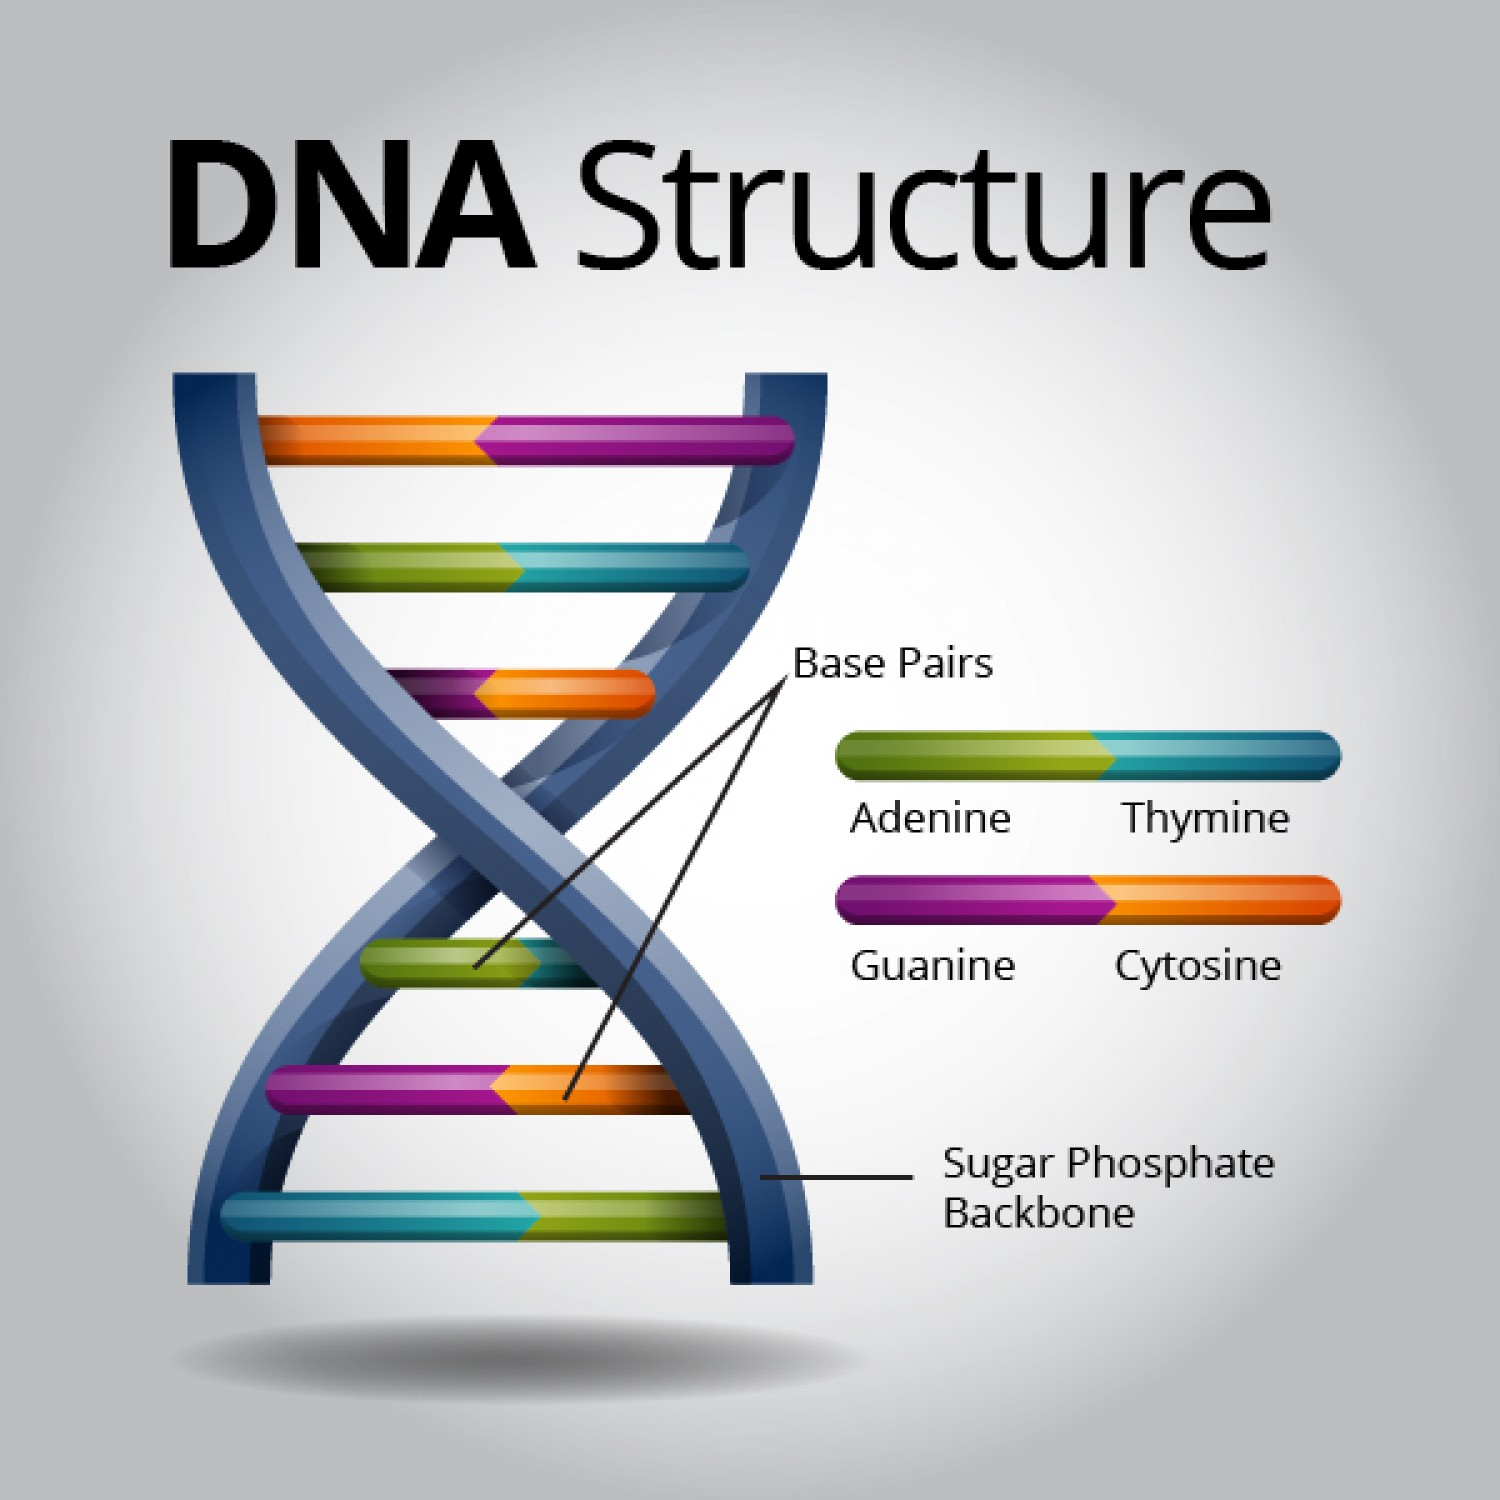 Dna history by jaron surtees infographic vocabulary ccuart Choice Image